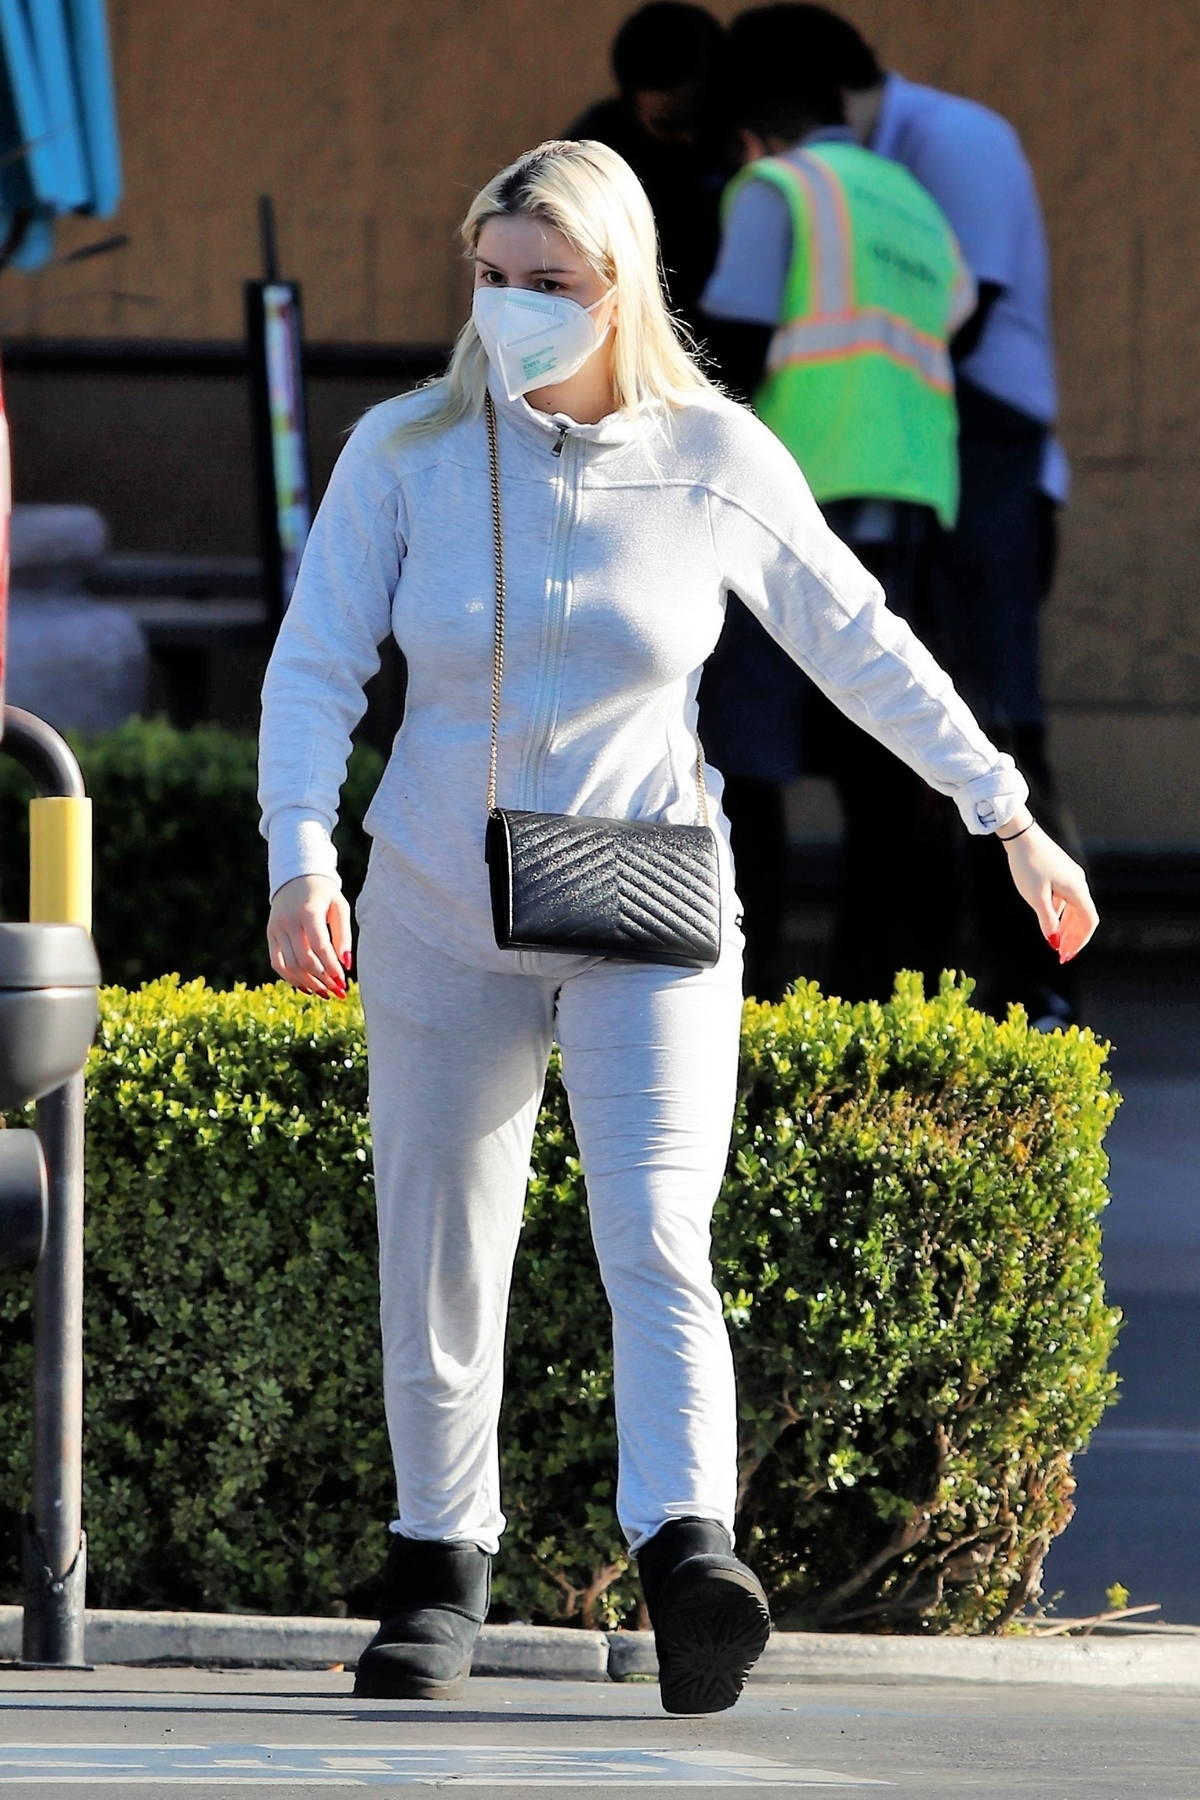 Ariel Winter looks cozy in a white sweatsuit as she stocks up on groceries at Gelson's in Los Angeles